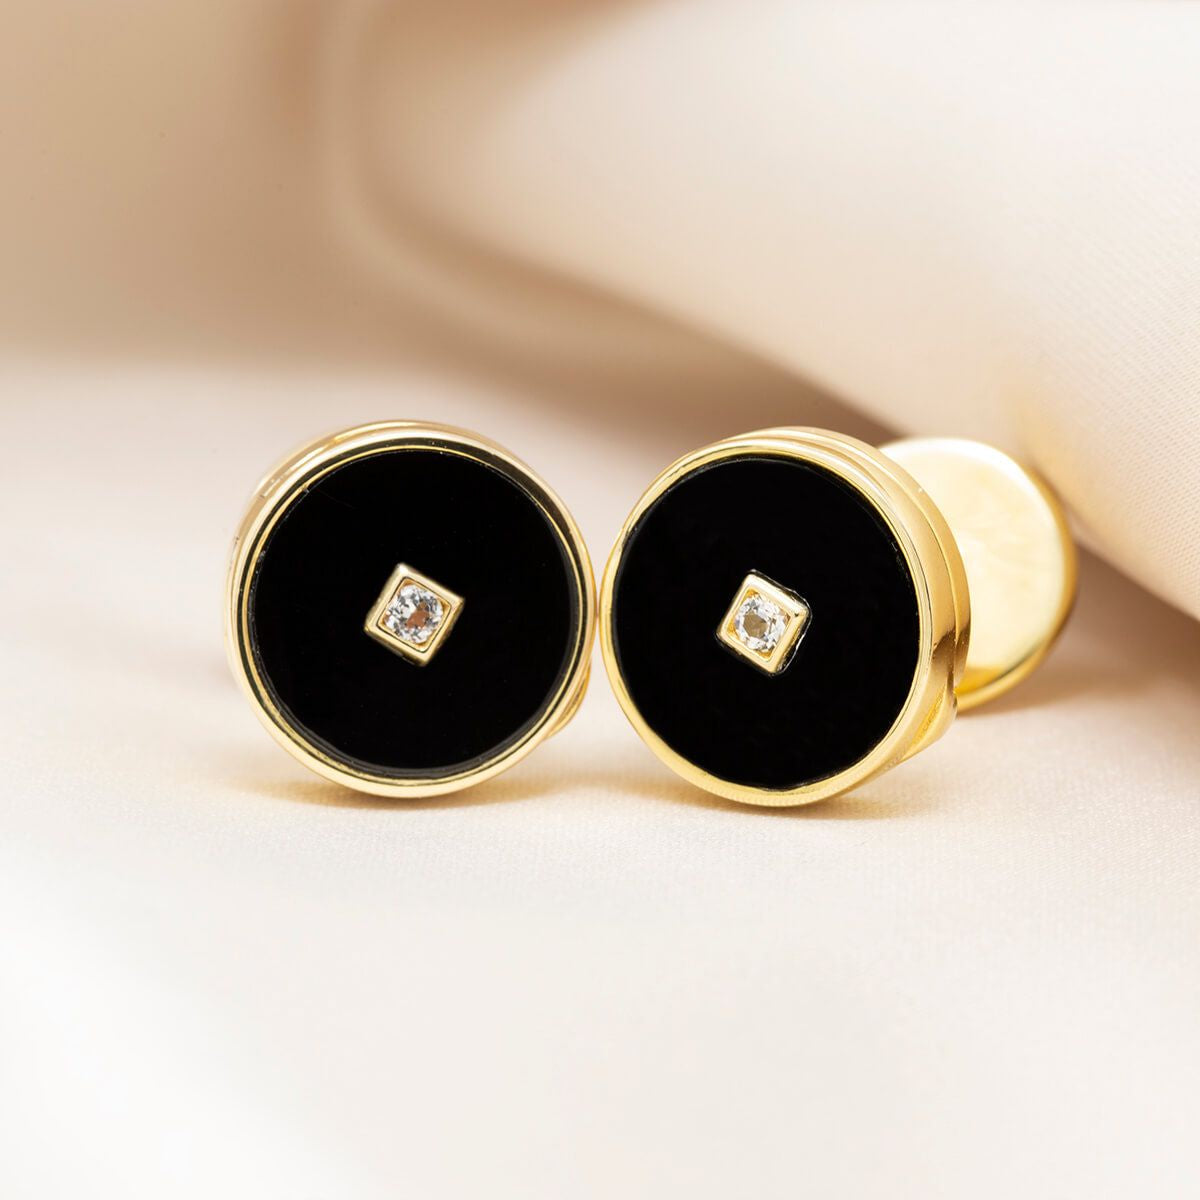 Ryan Locket Cufflinks - Yellow Gold Plated